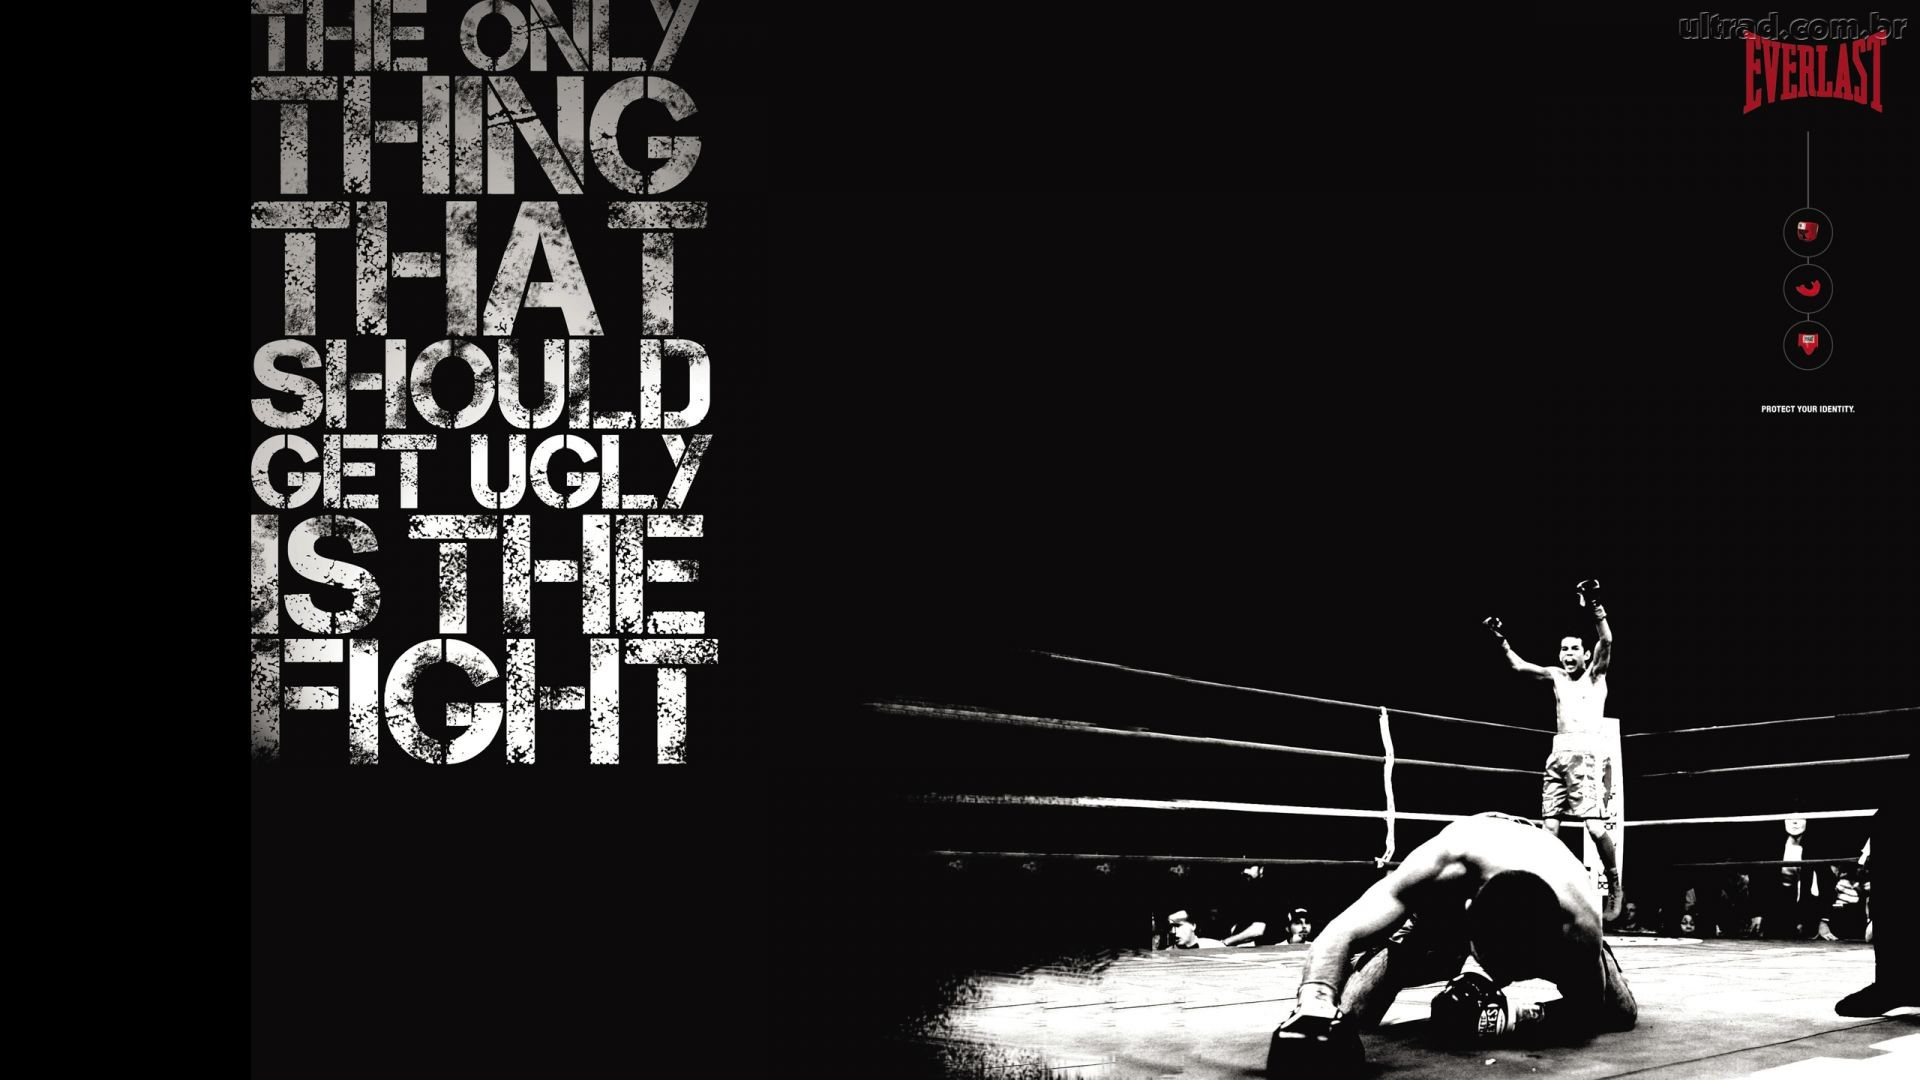 Manny Pacquiao Quotes Wallpaper Boxing Quotes Wallpapers 183 ①